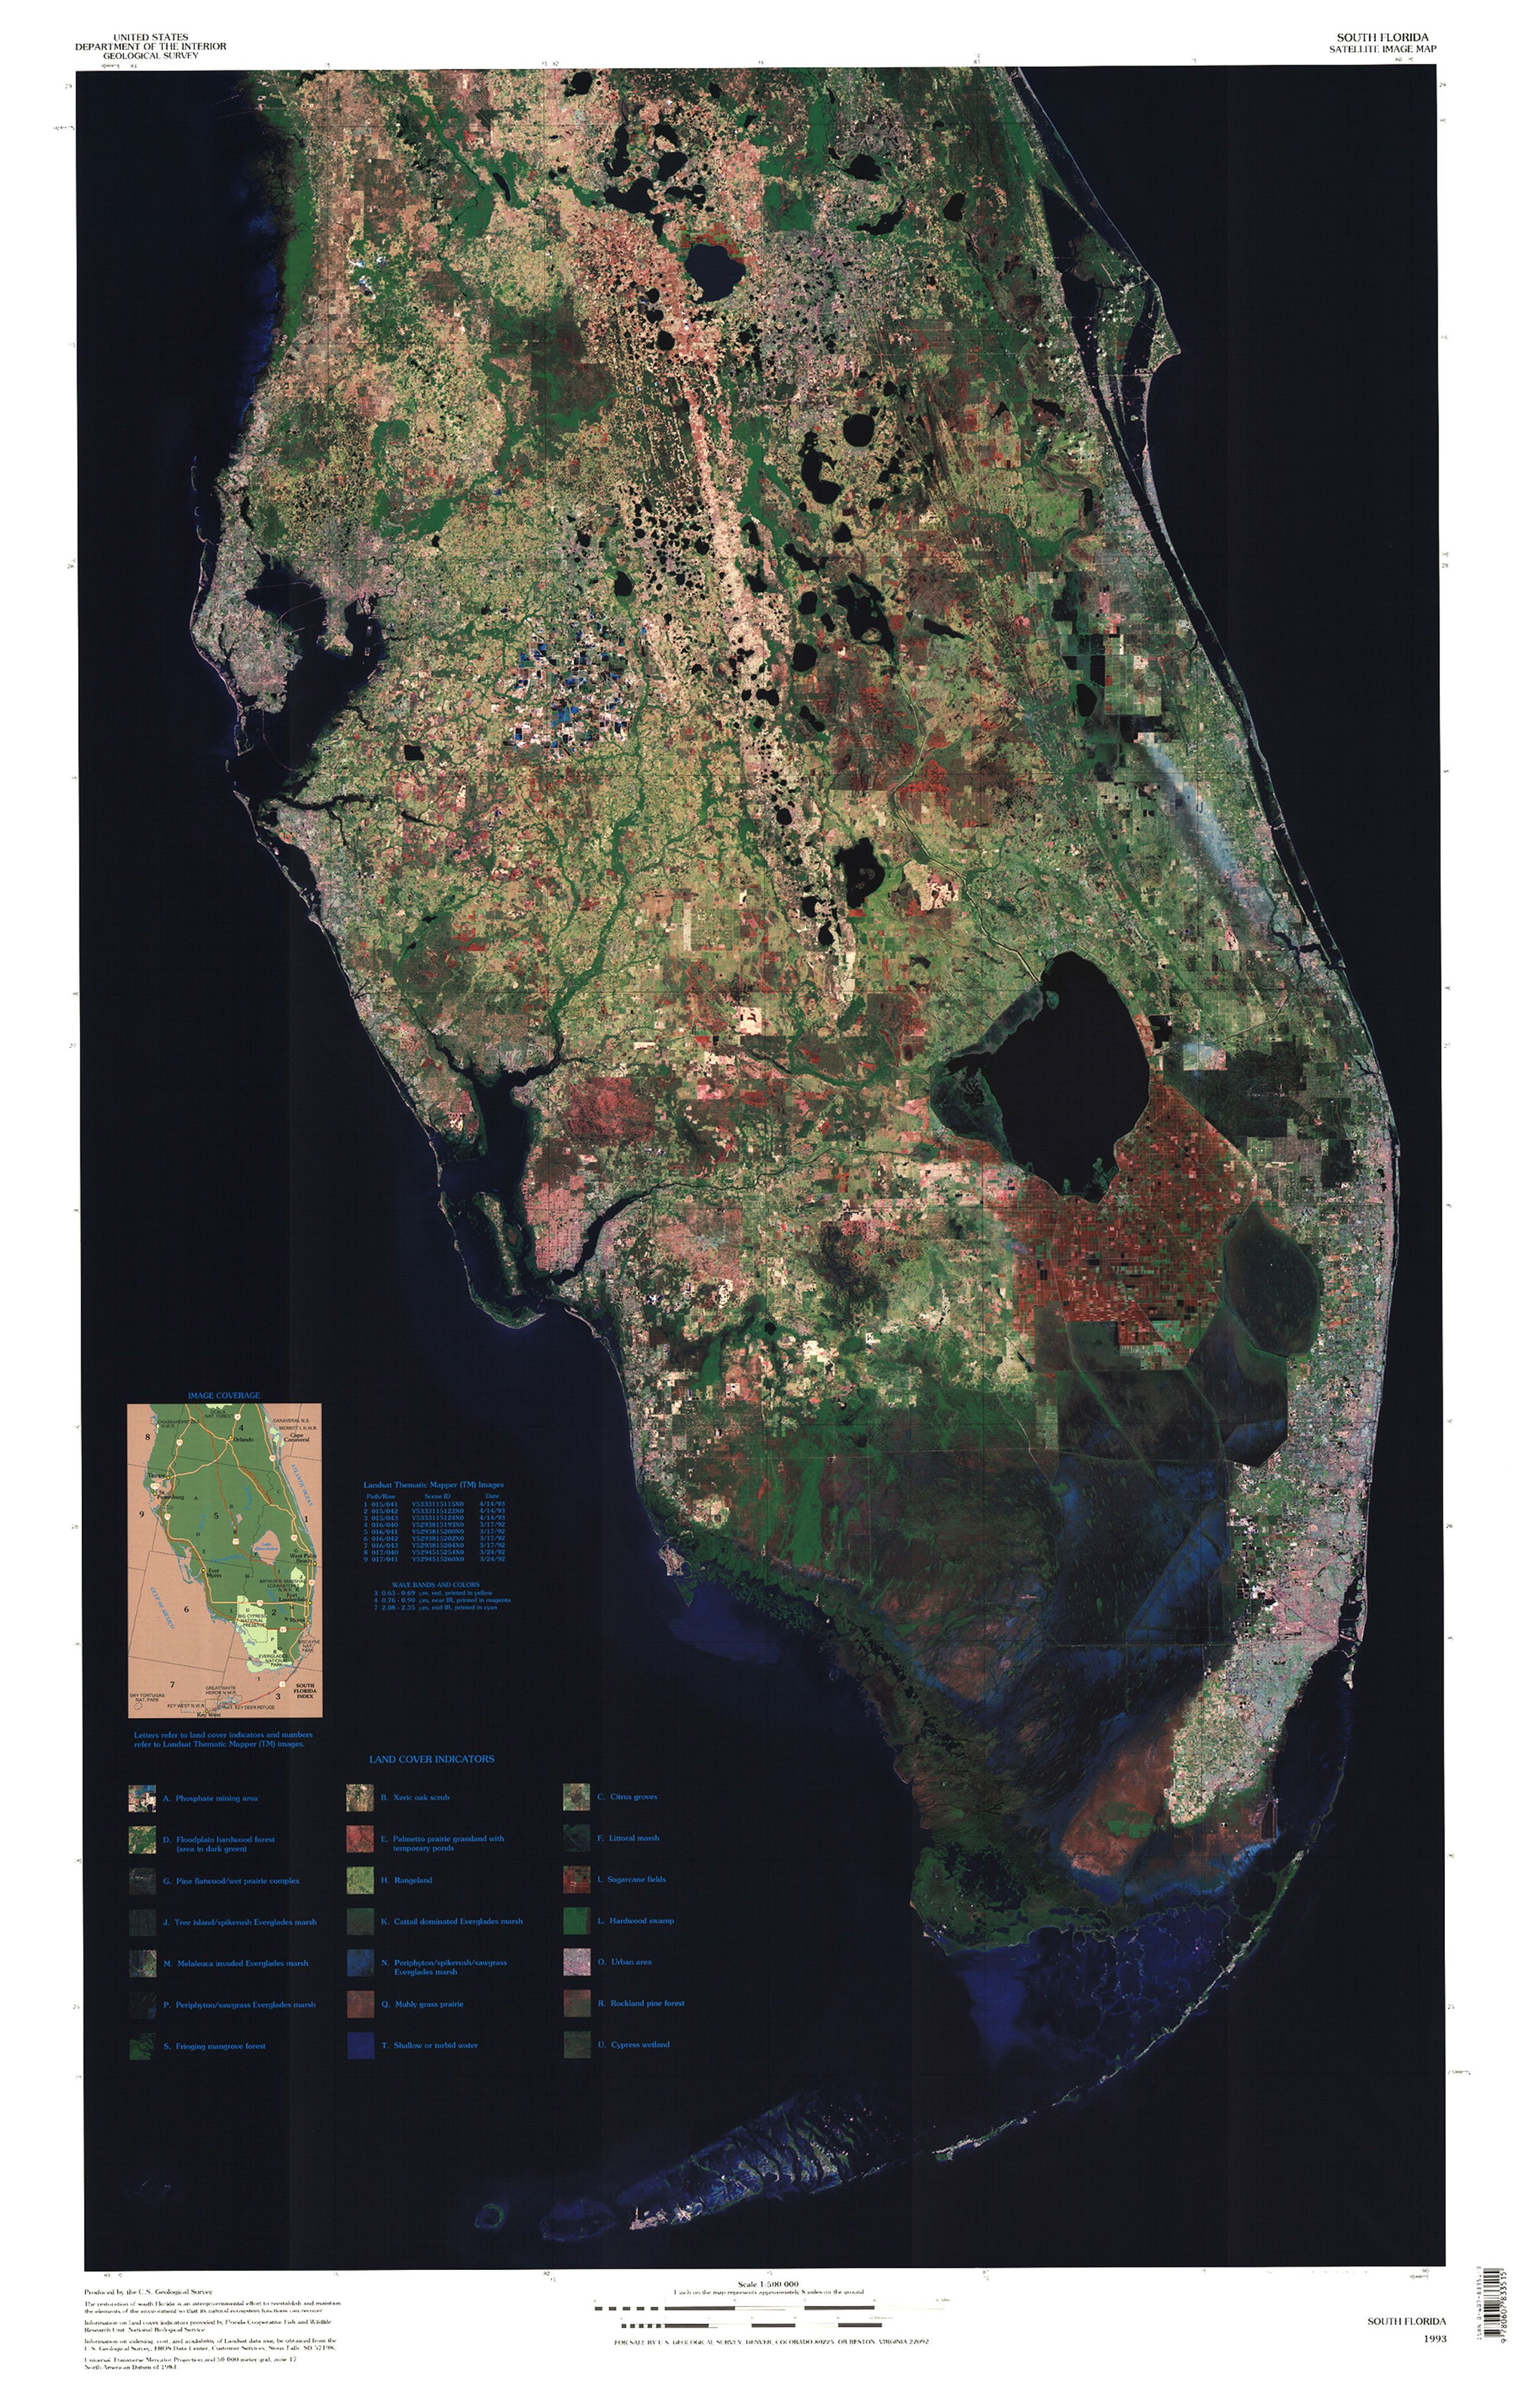 South Florida Satellite Image Map | Maps | Pinterest | Cypress Swamp - Map Of Florida Showing The Everglades